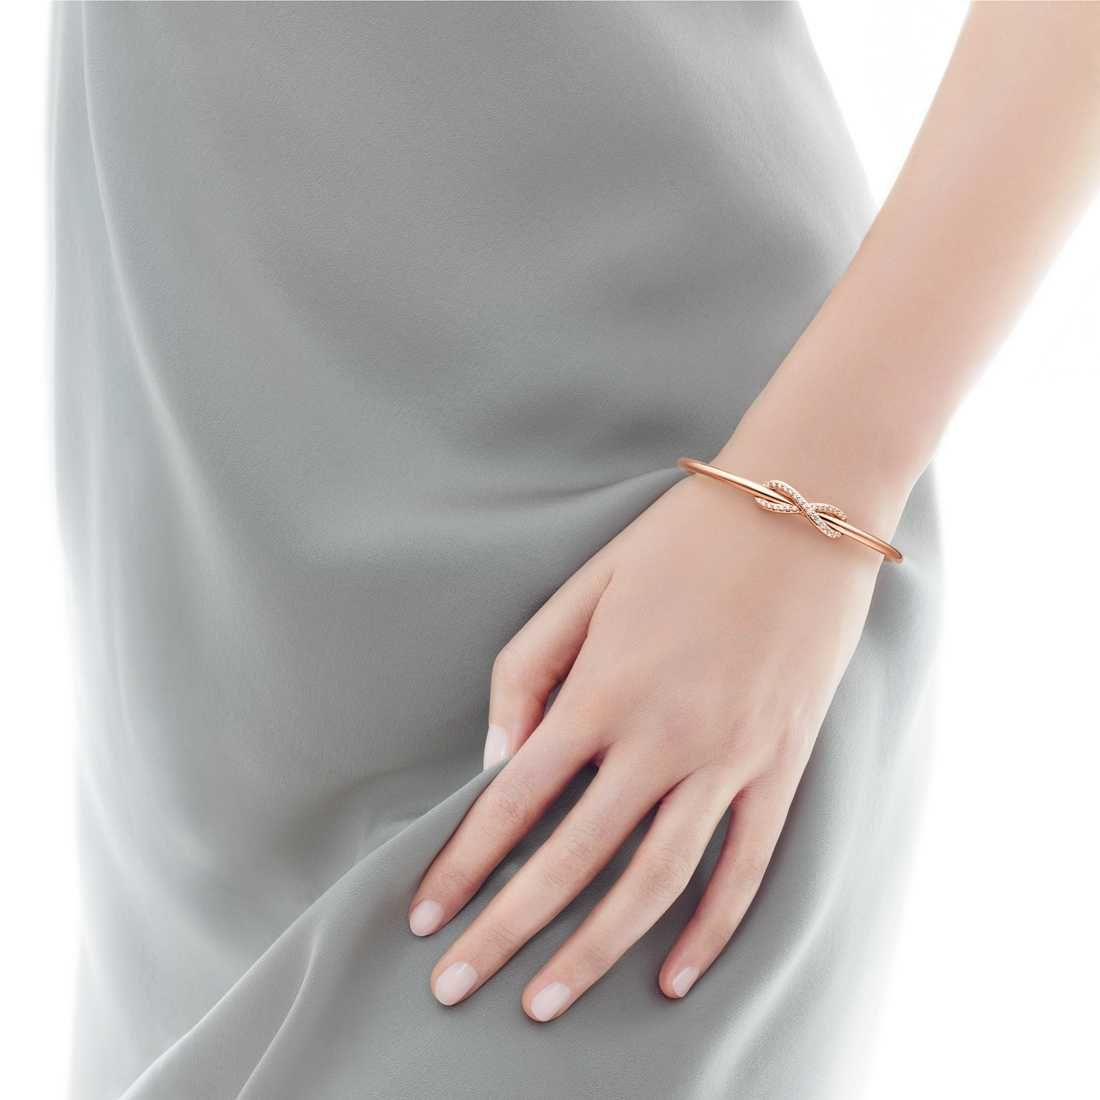 0801fc278 Cuff in 2019 | cartier / tiffany awesmeness | Tiffany bracelets ...